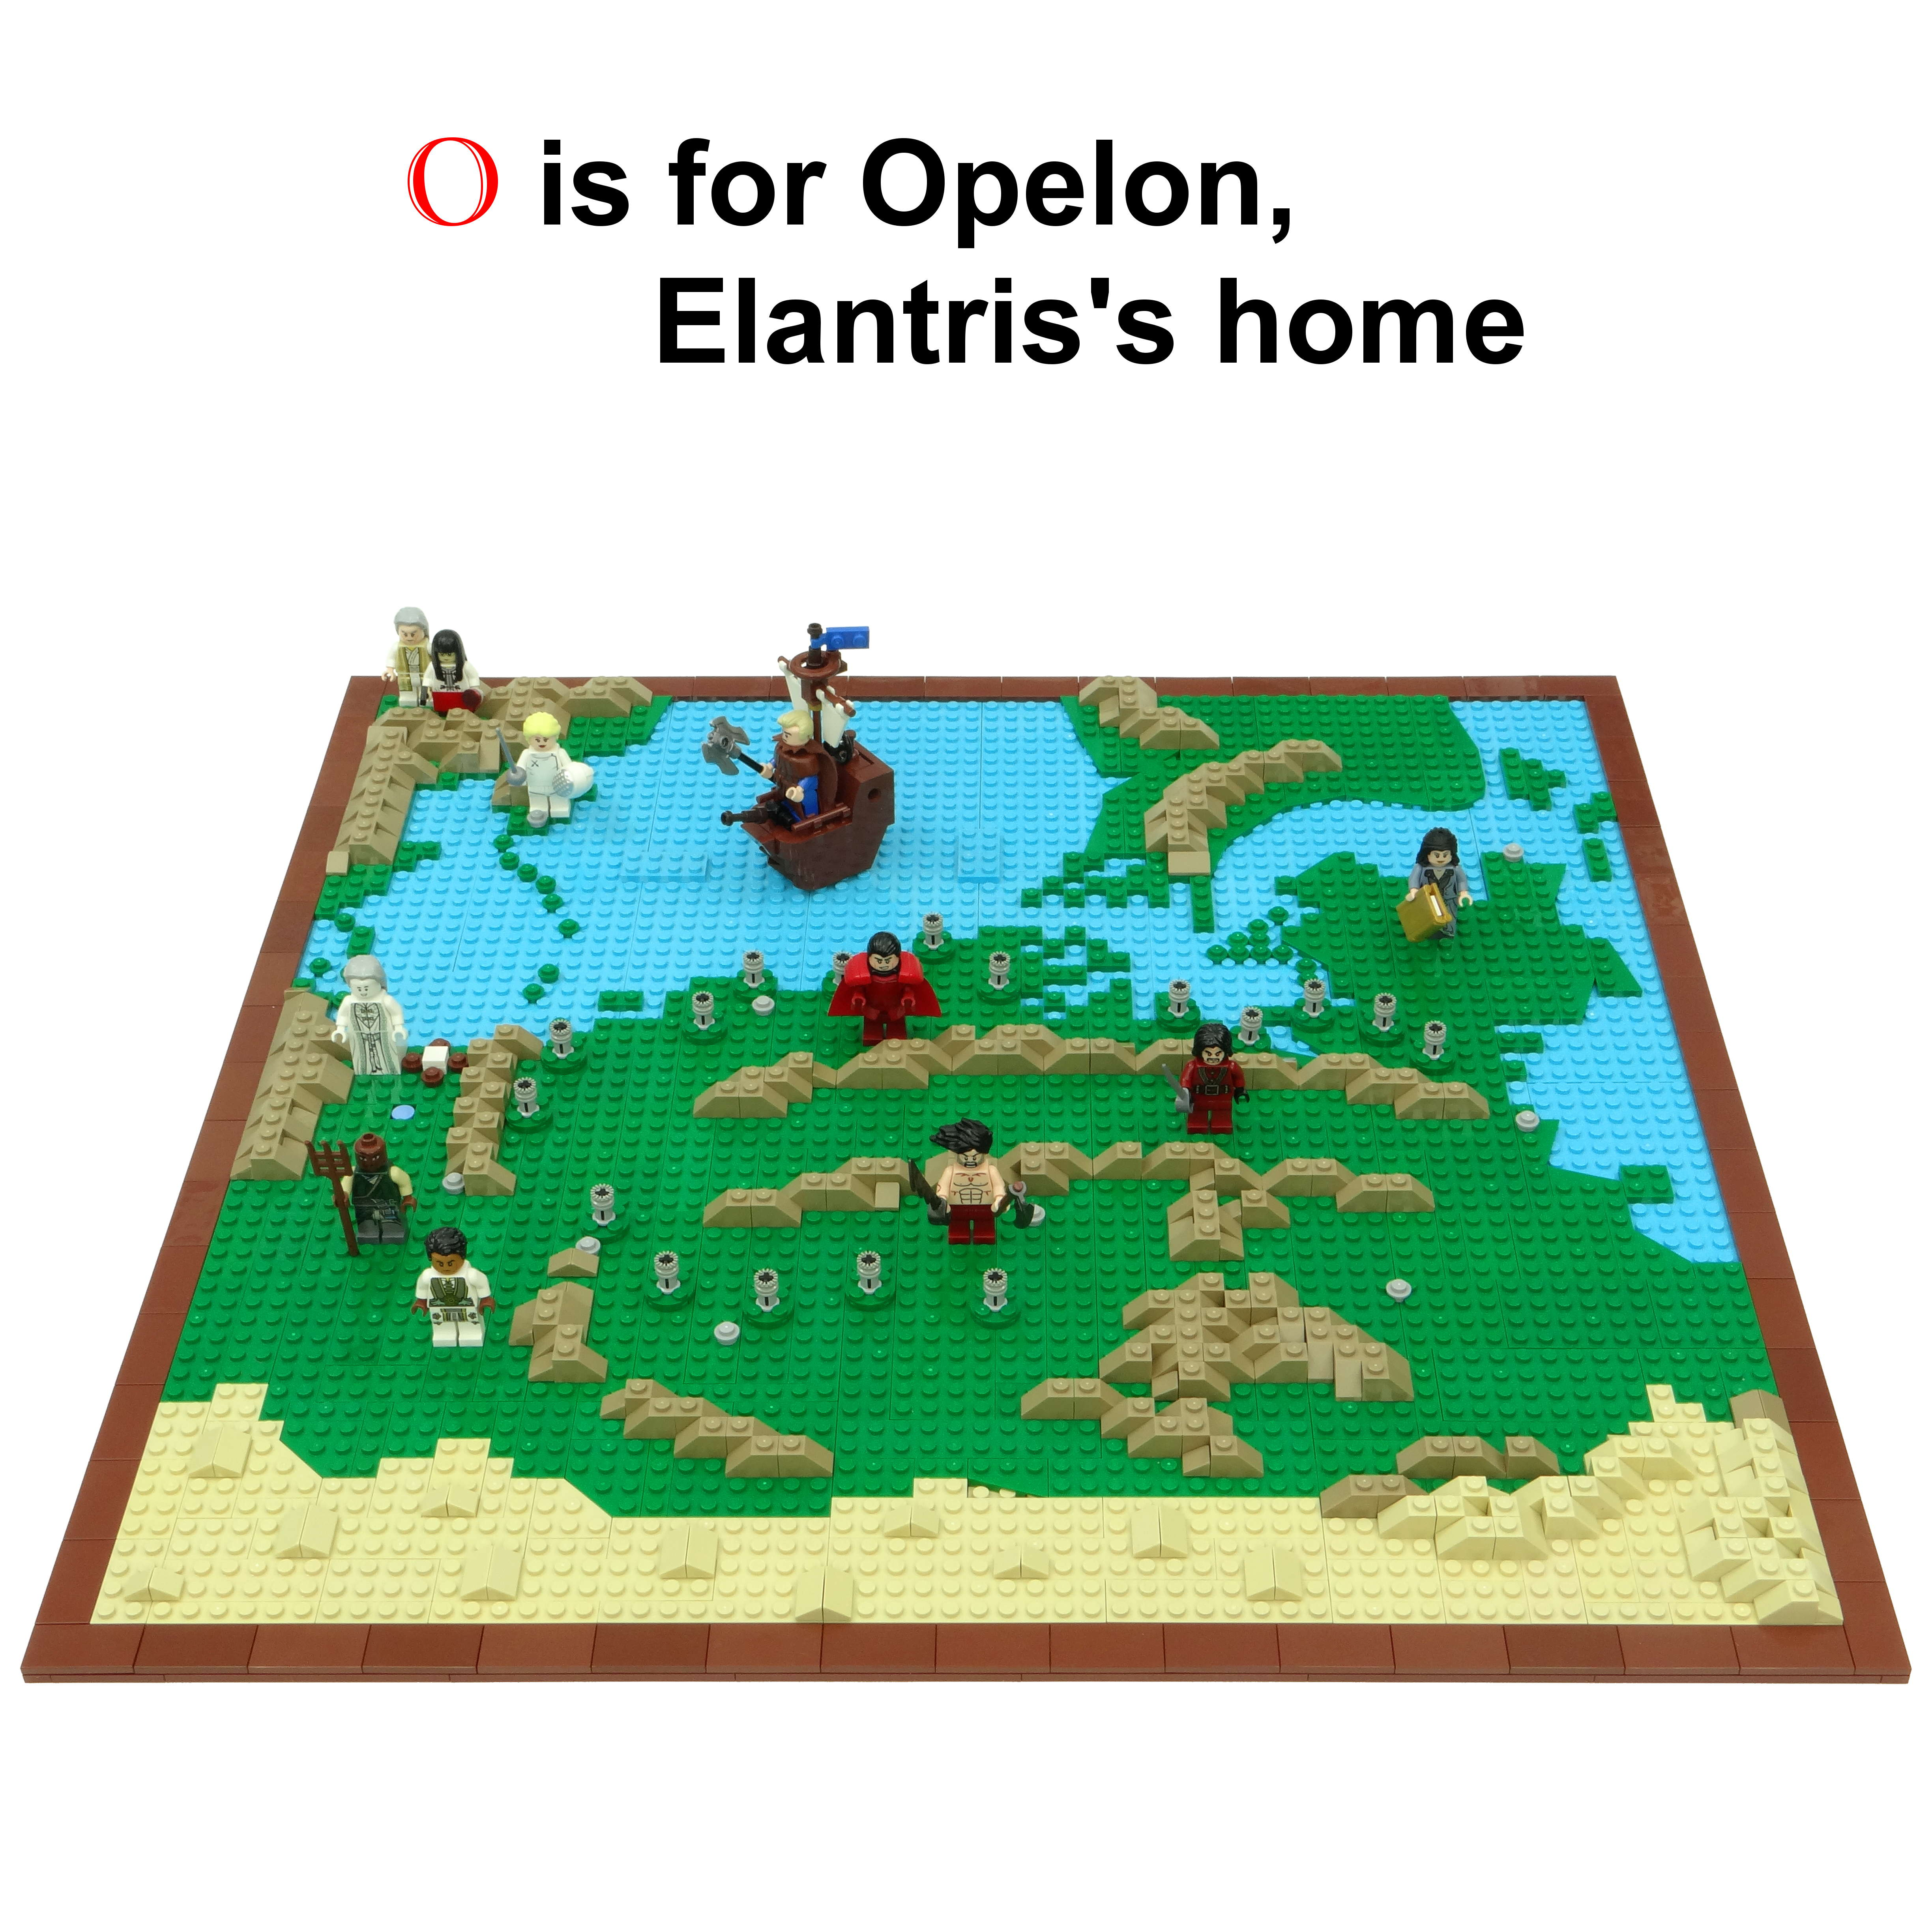 O-is-for-Opelon